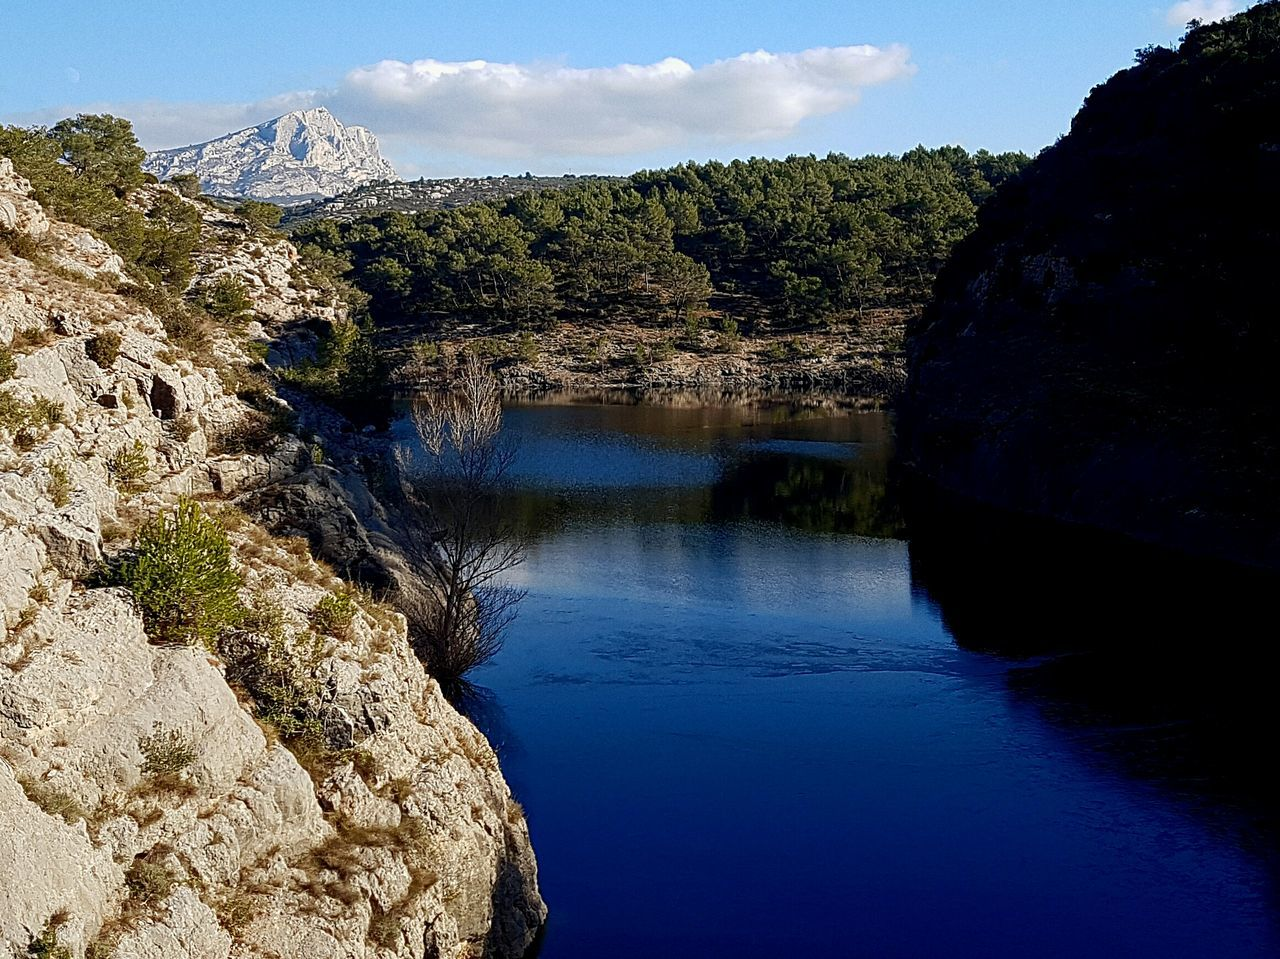 Water Blue Reflection Landscape Nature Vacations Beauty In Nature No People Sky Day Barage Architecture Clear Sky Montagne Bridge - Man Made Structure Lifestyles Aixmaville Beauty In Nature Provence Alpes Cote D´Azur Provence Mountains Naturelover Aix-en-Provence Saintevictoire Nature